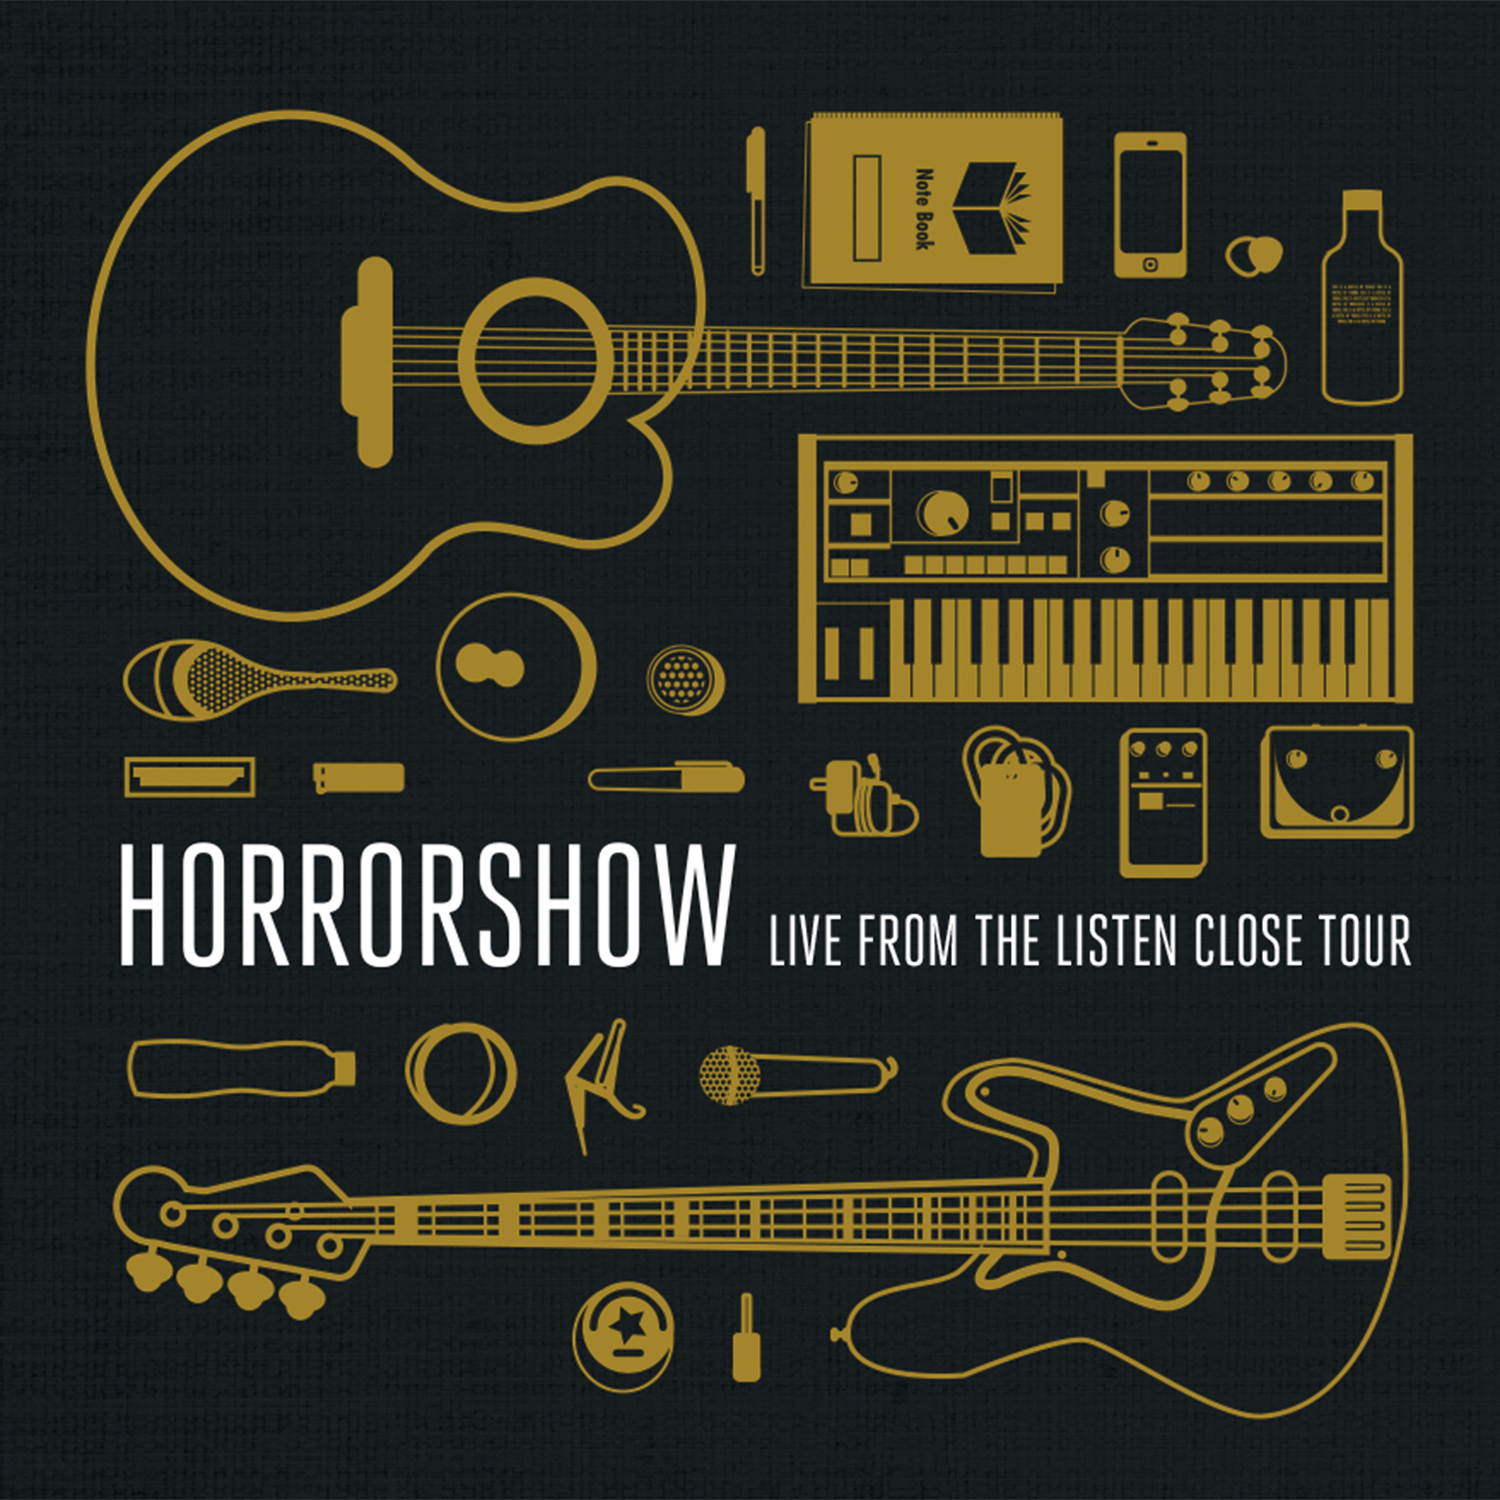 ACE125-Horrorshow-Live-from-the-Listen-Close-Tour_1500.jpg